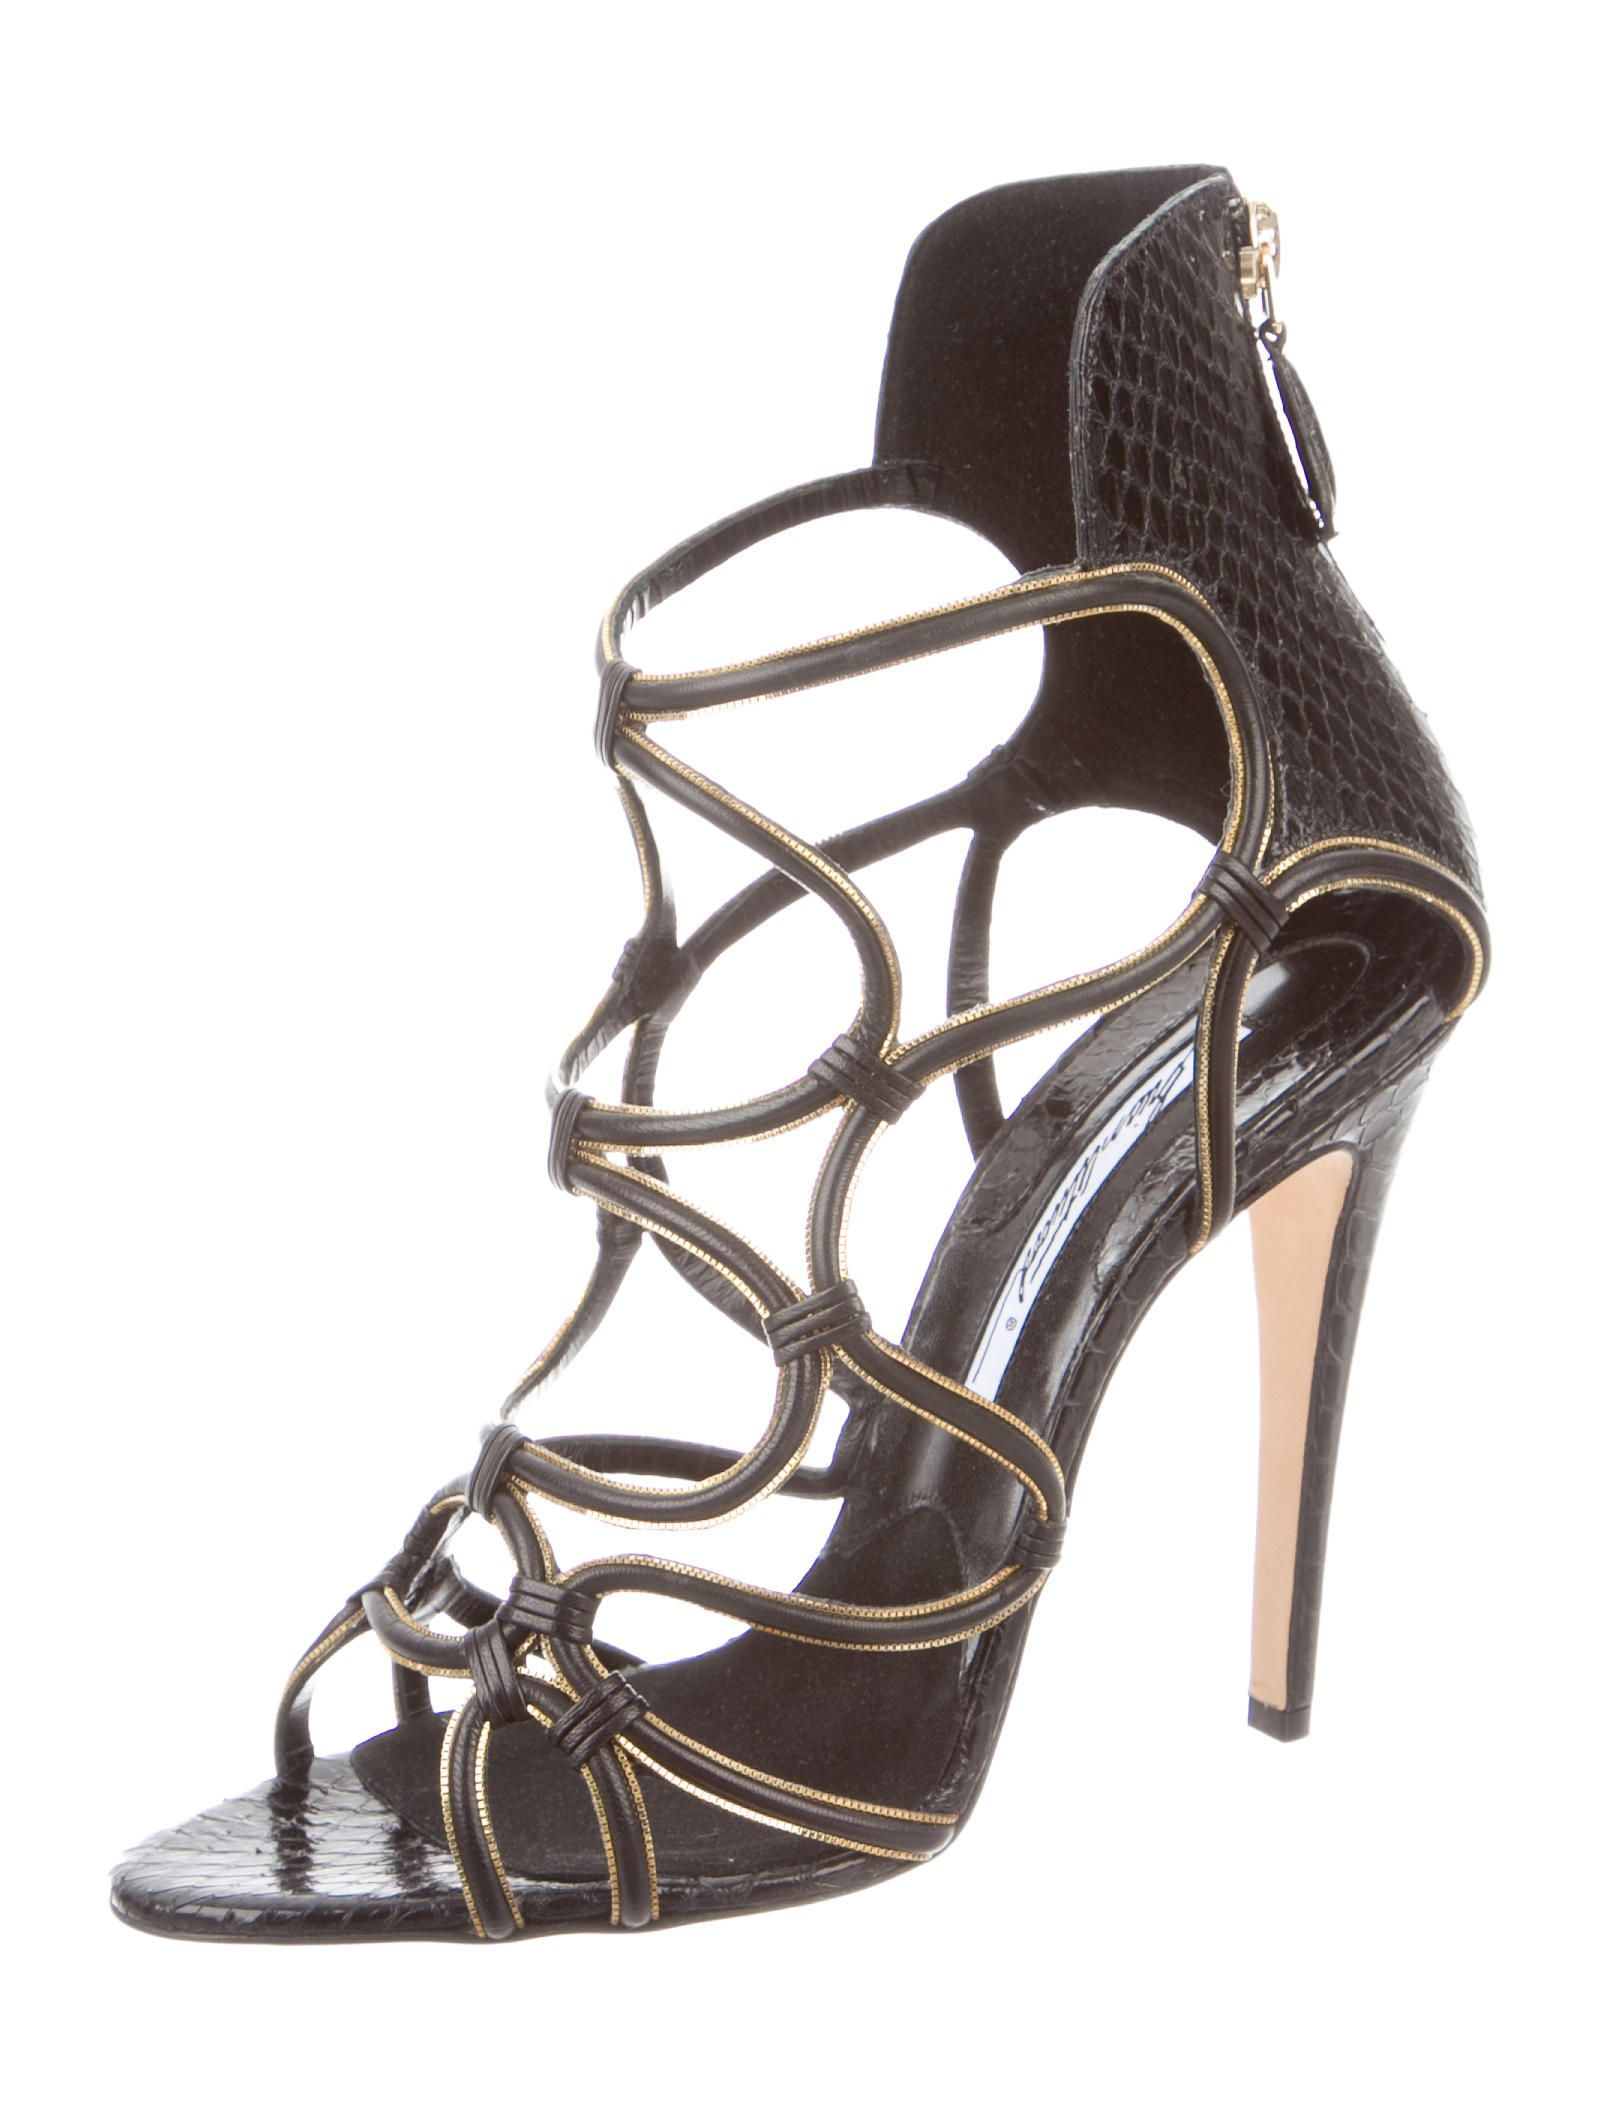 buy cheap ebay cheap marketable Brian Atwood Snakeskin Caged Sandals 0rU73zTV